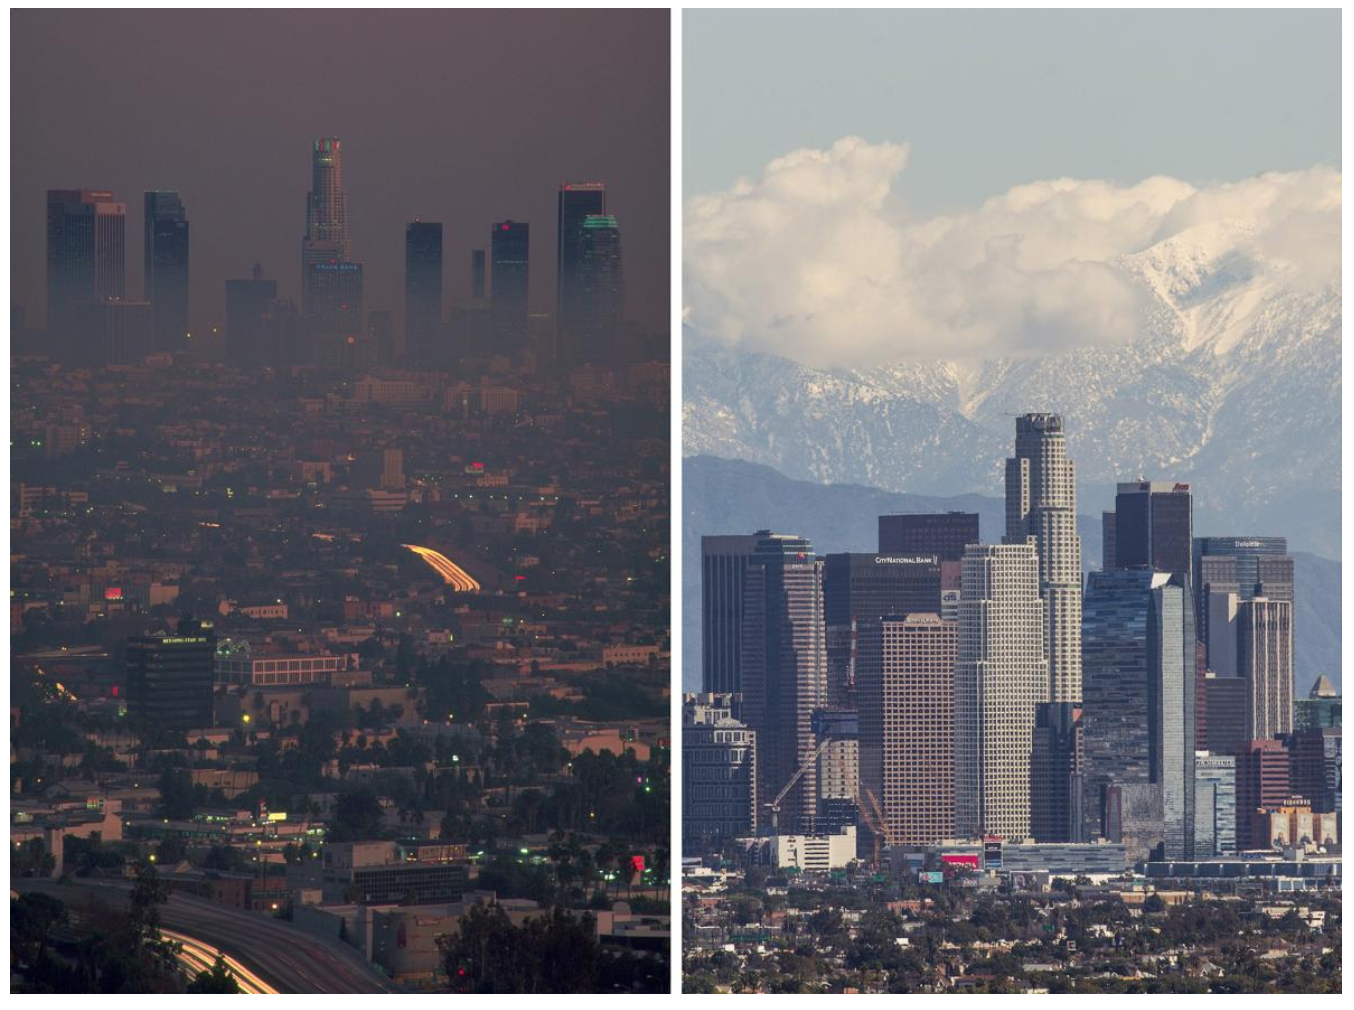 Left: A smoggy haze lingers over the L.A. skyline in the 1980s. Right: The city's air is clear after a winter storm in March, 2015.  As Smog Thins in L.A., Dramatic Evidence of Kids' Healthier Lungs  National Geographic  PHOTOGRAPHS BY PHILIP JAMES CORWIN, CORBIS (LEFT) AND RINGO CHIU, ZUMA WIRE/CORBIS (RIGHT)